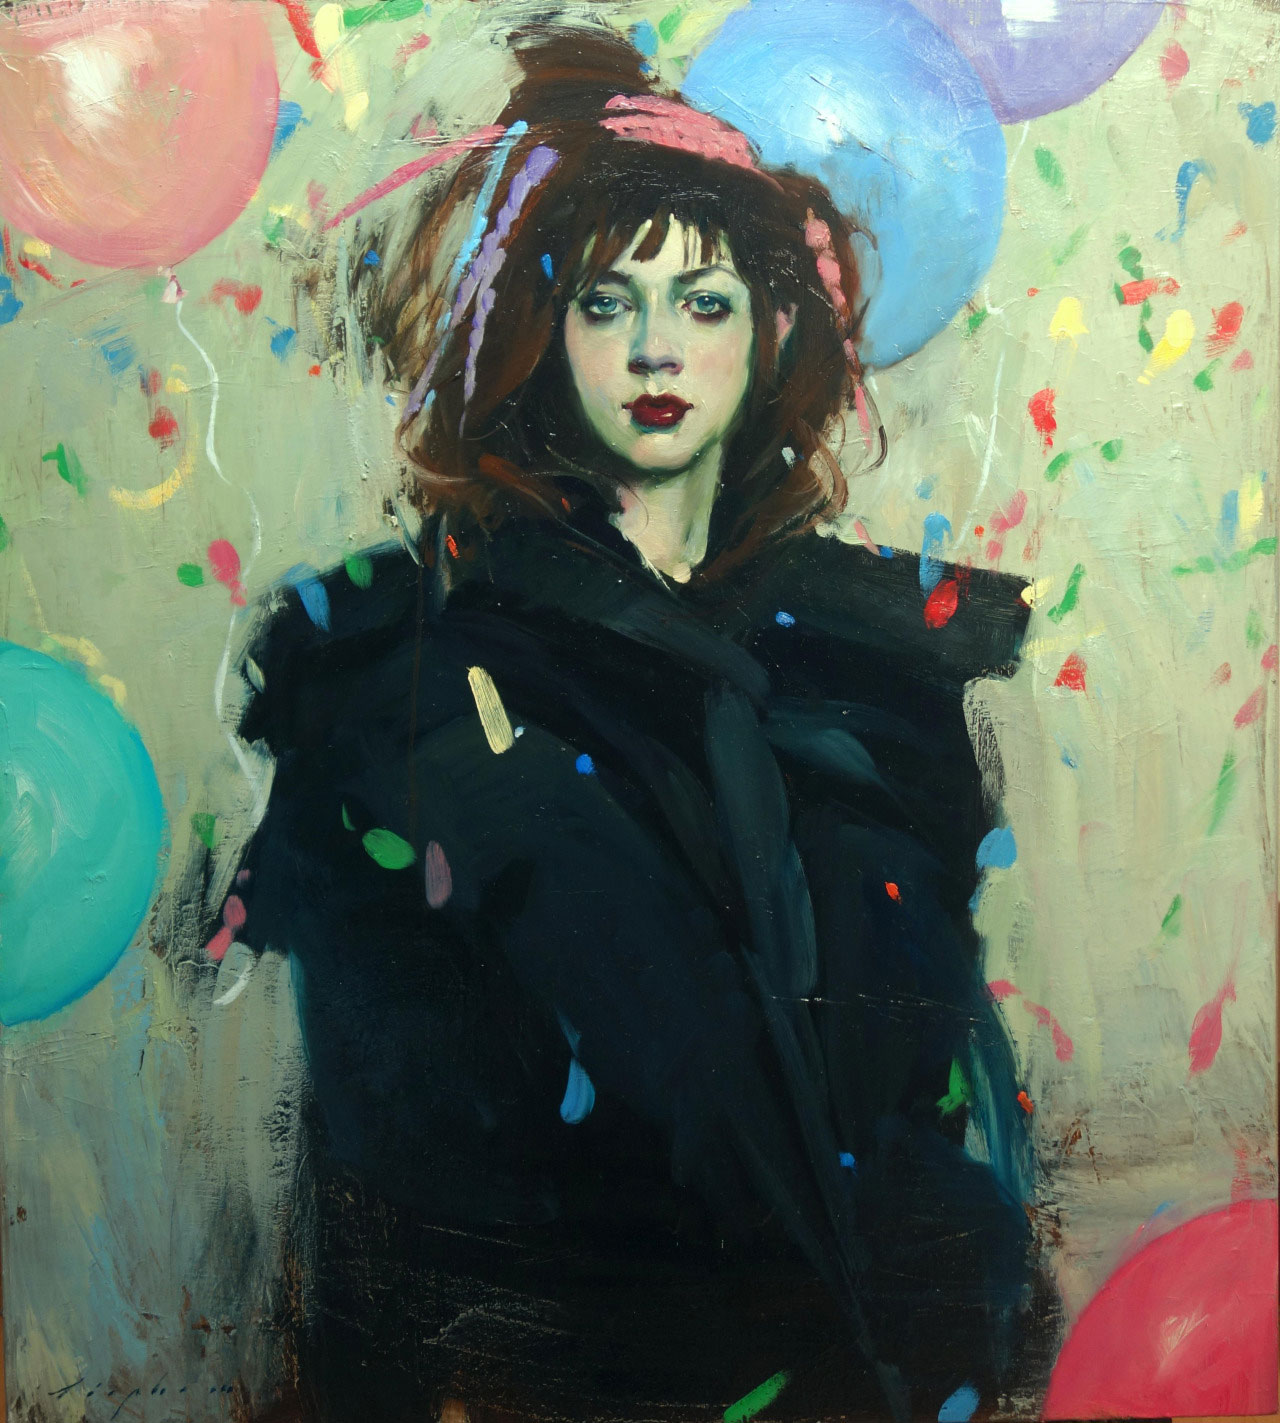 Balloons and Confetti, 2016 by Malcolm T. Liepke | Yellowtrace